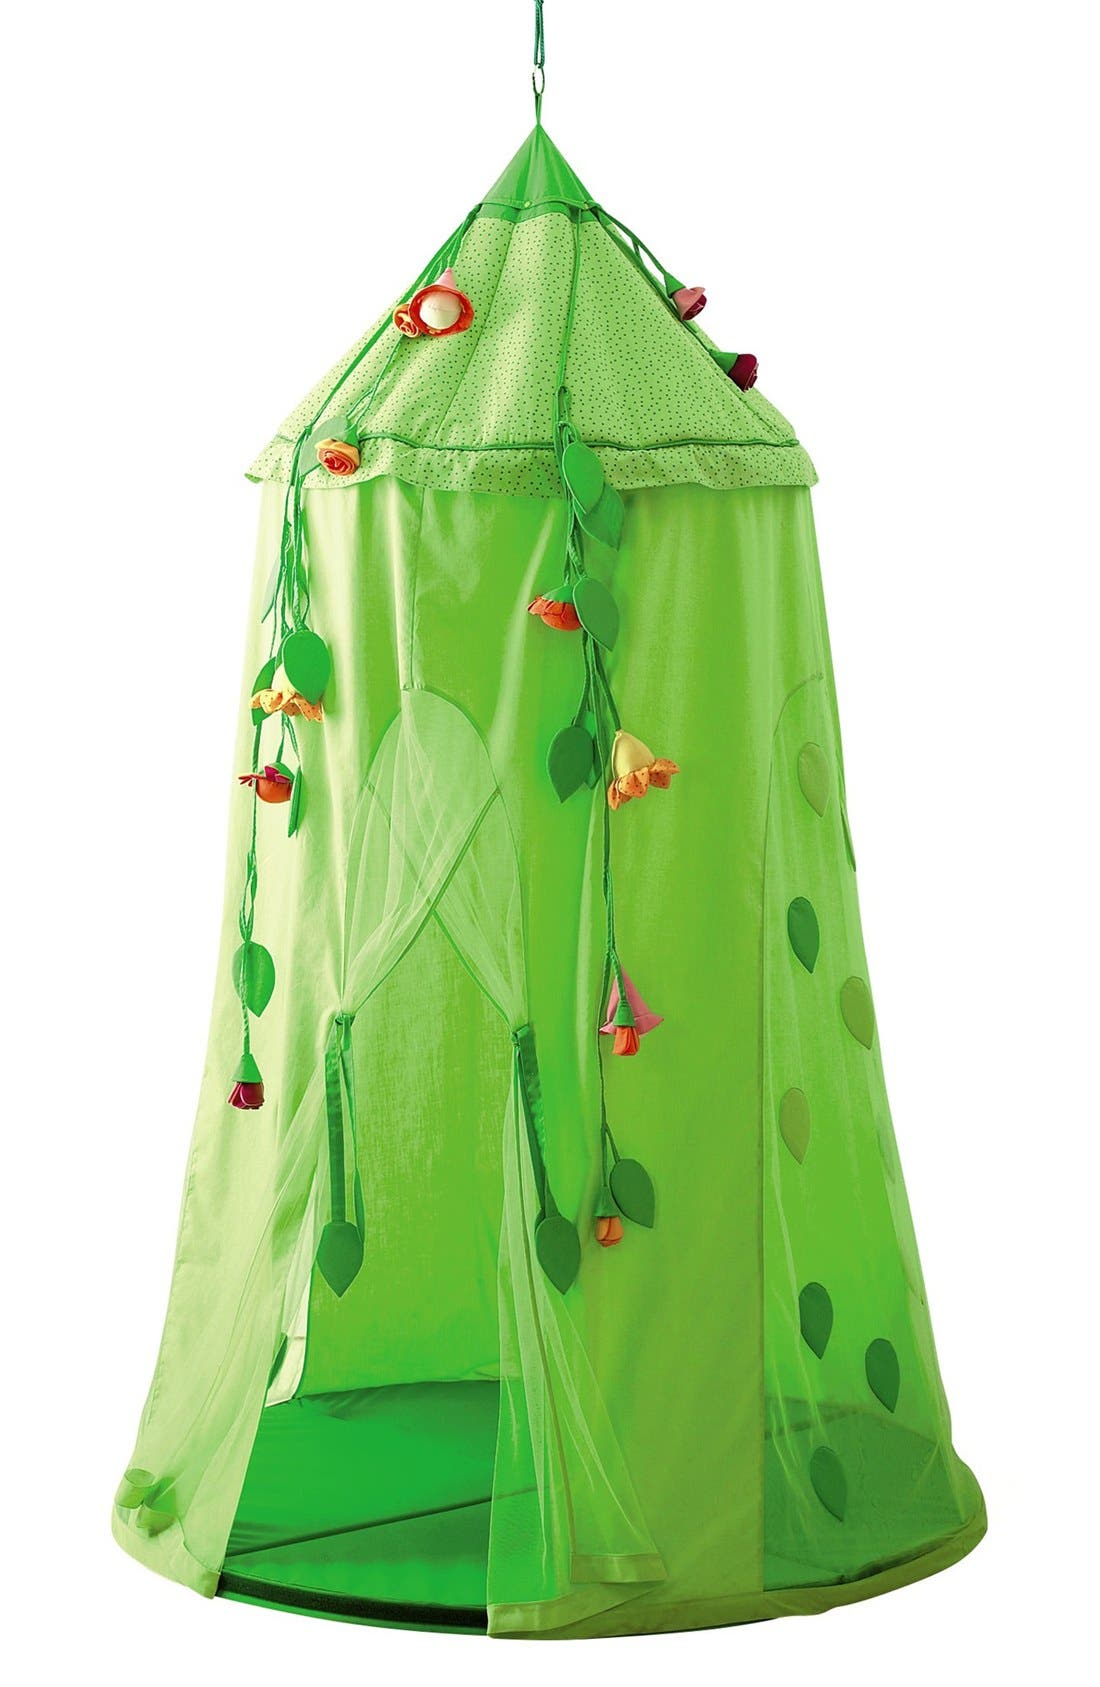 HABA u0027Blossom Skyu0027 Hanging Play Tent  sc 1 st  Nordstrom & Play Tents u0026 Teepees Kids Toy Shop | Nordstrom